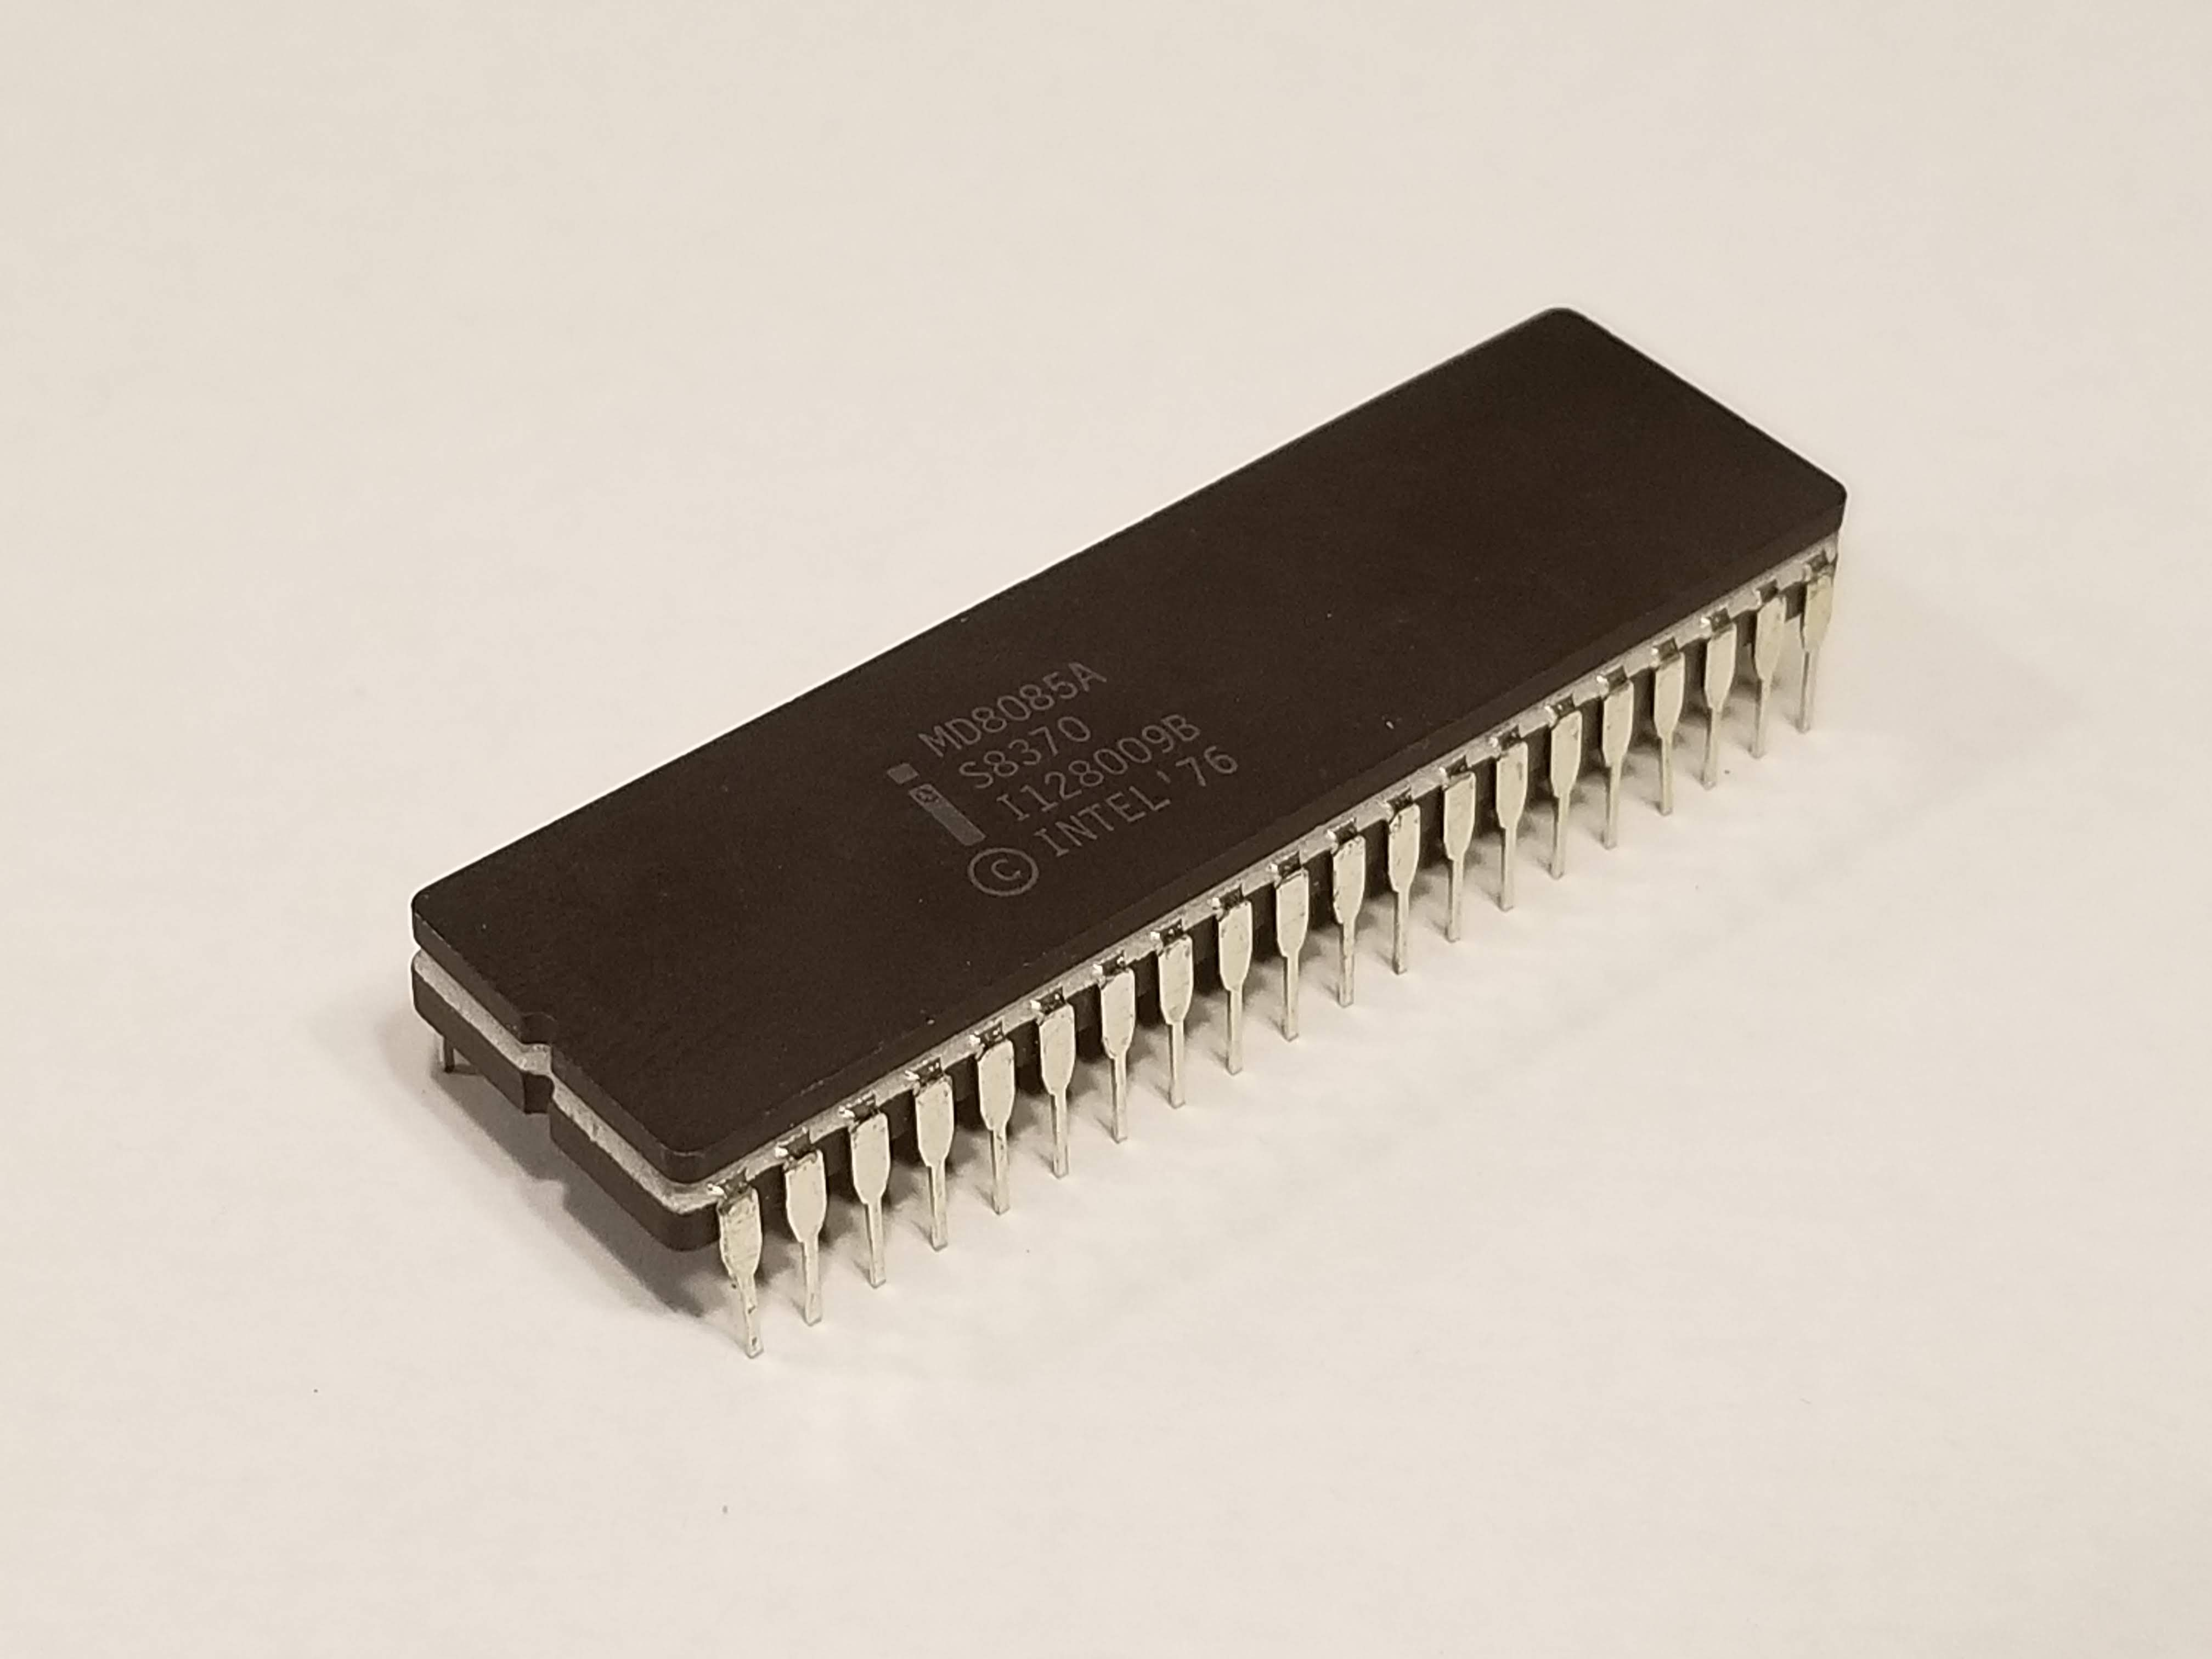 Picture of MD8085 8-bit Microprocessor